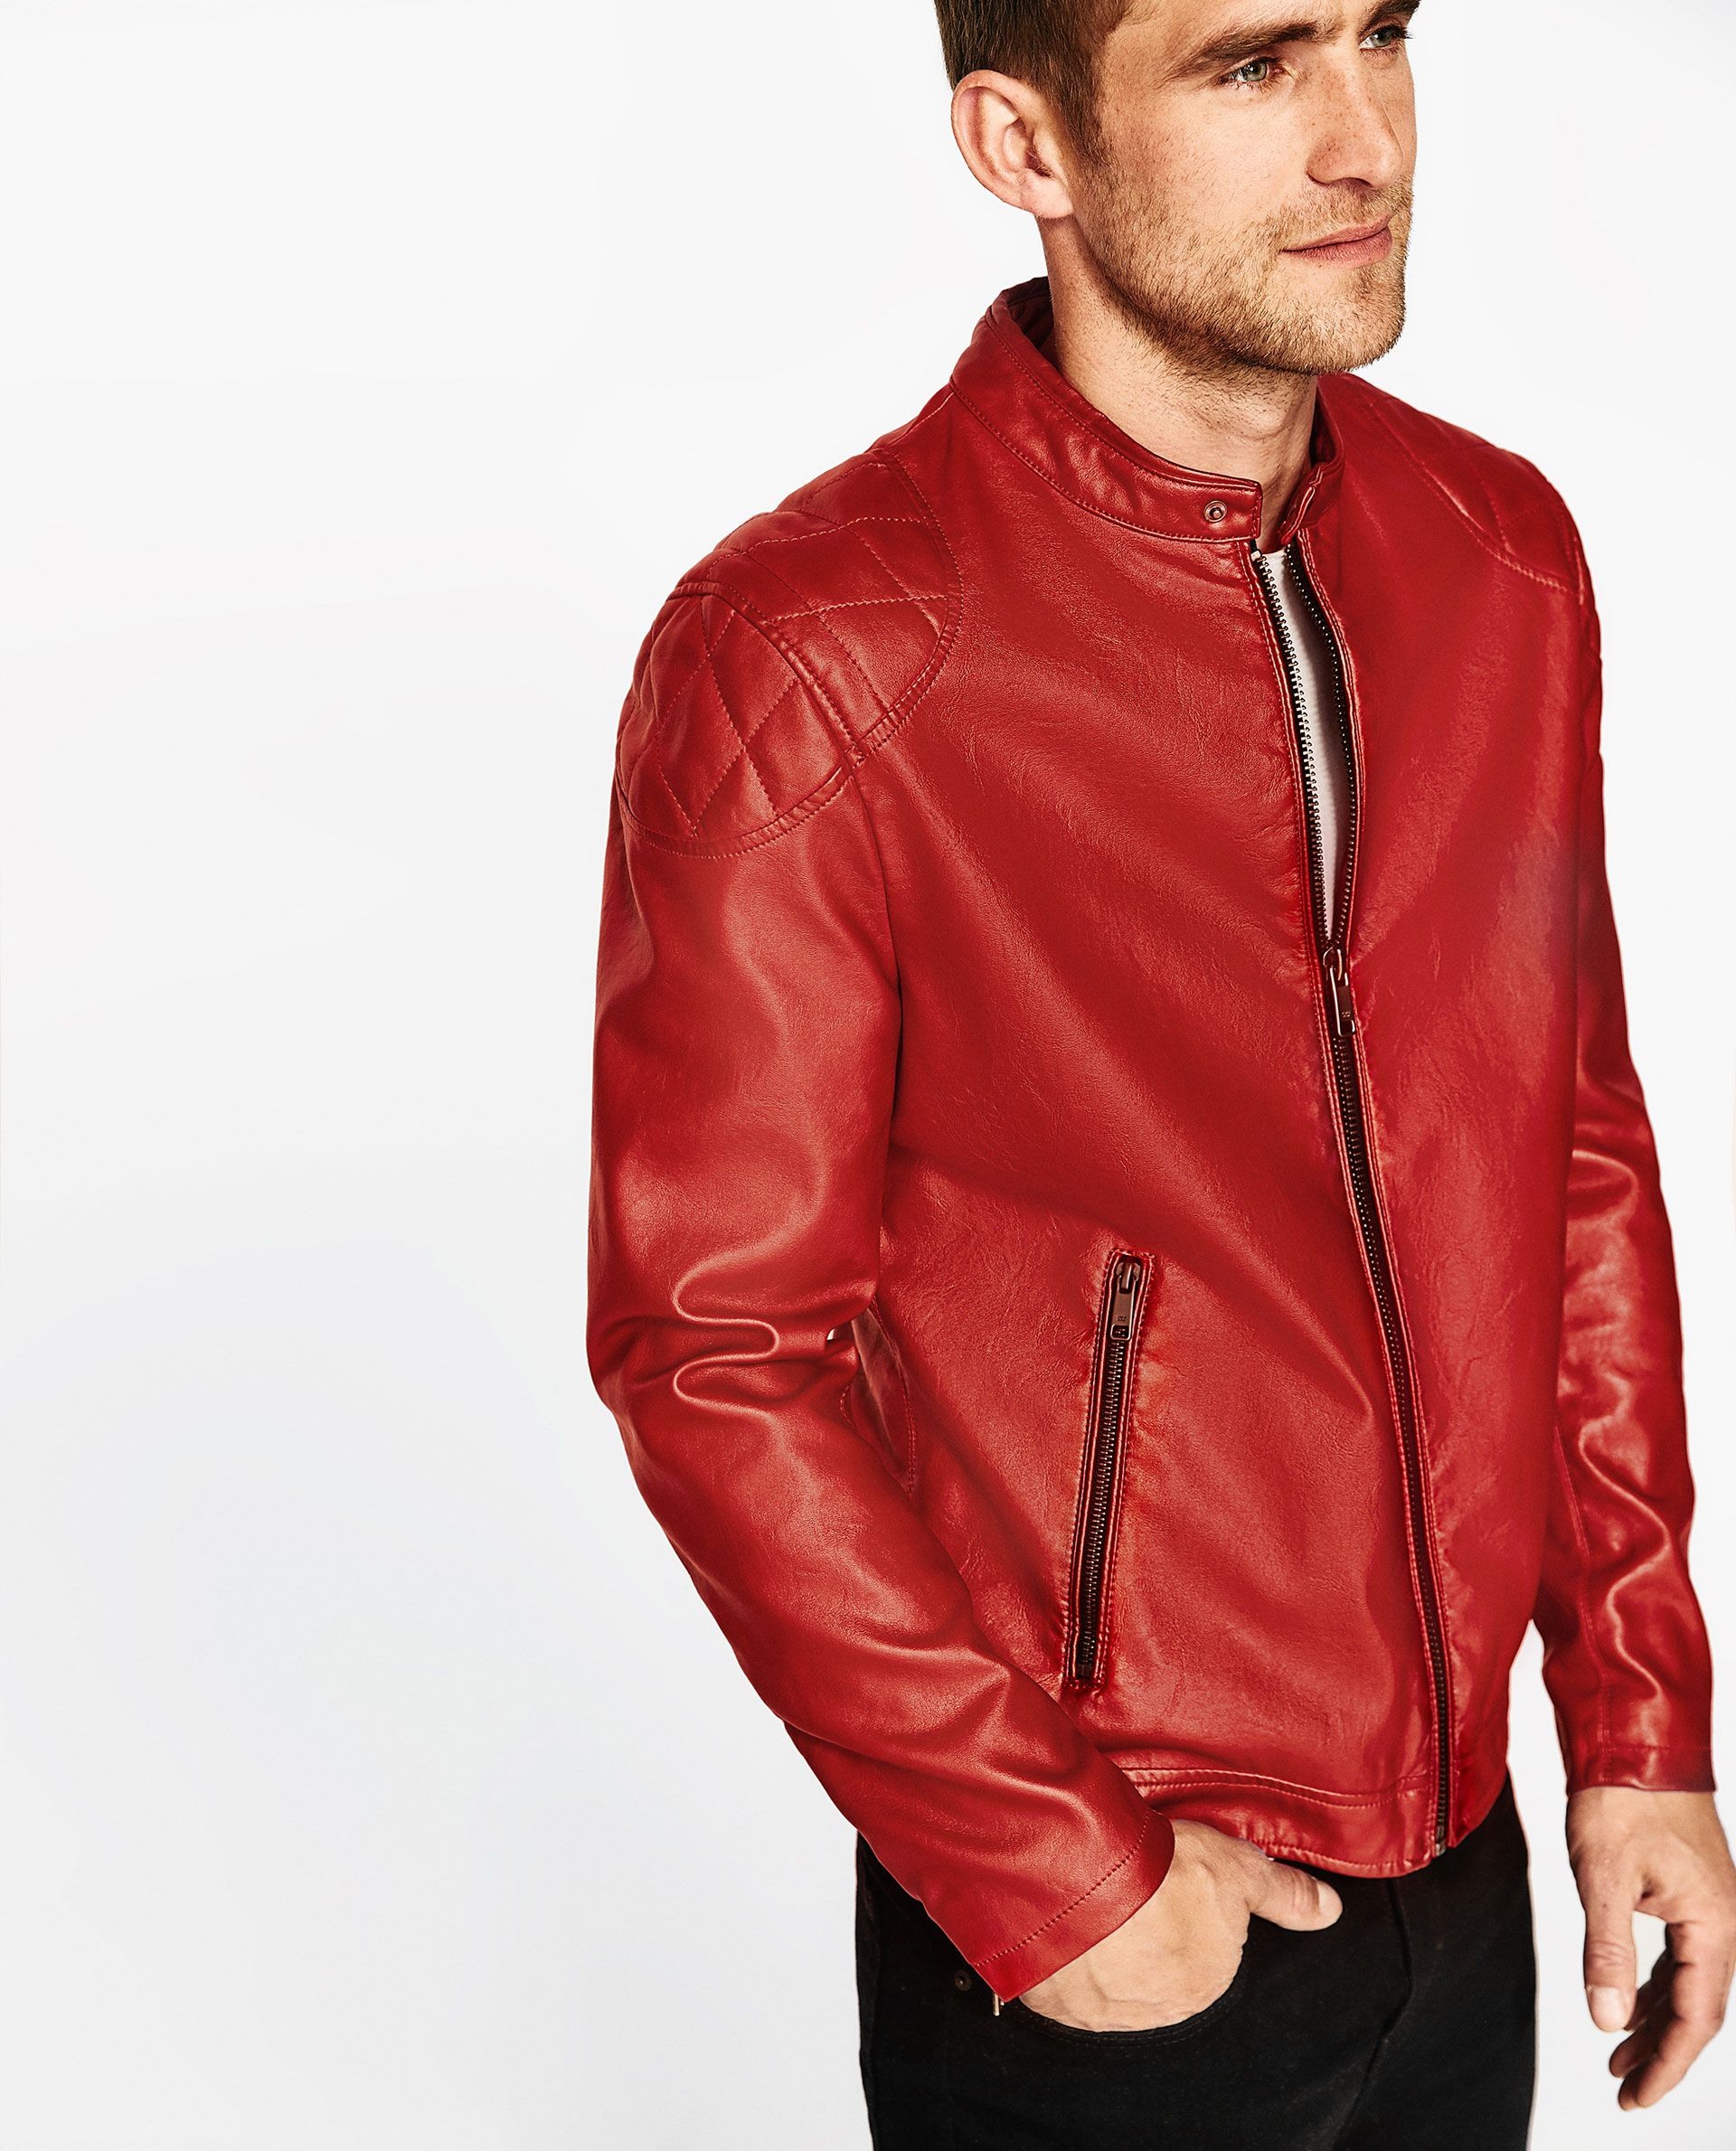 6765a182 Men's Jackets | Summer Sale 2017 | ZARA United States Red Leather, Leather  Jacket,